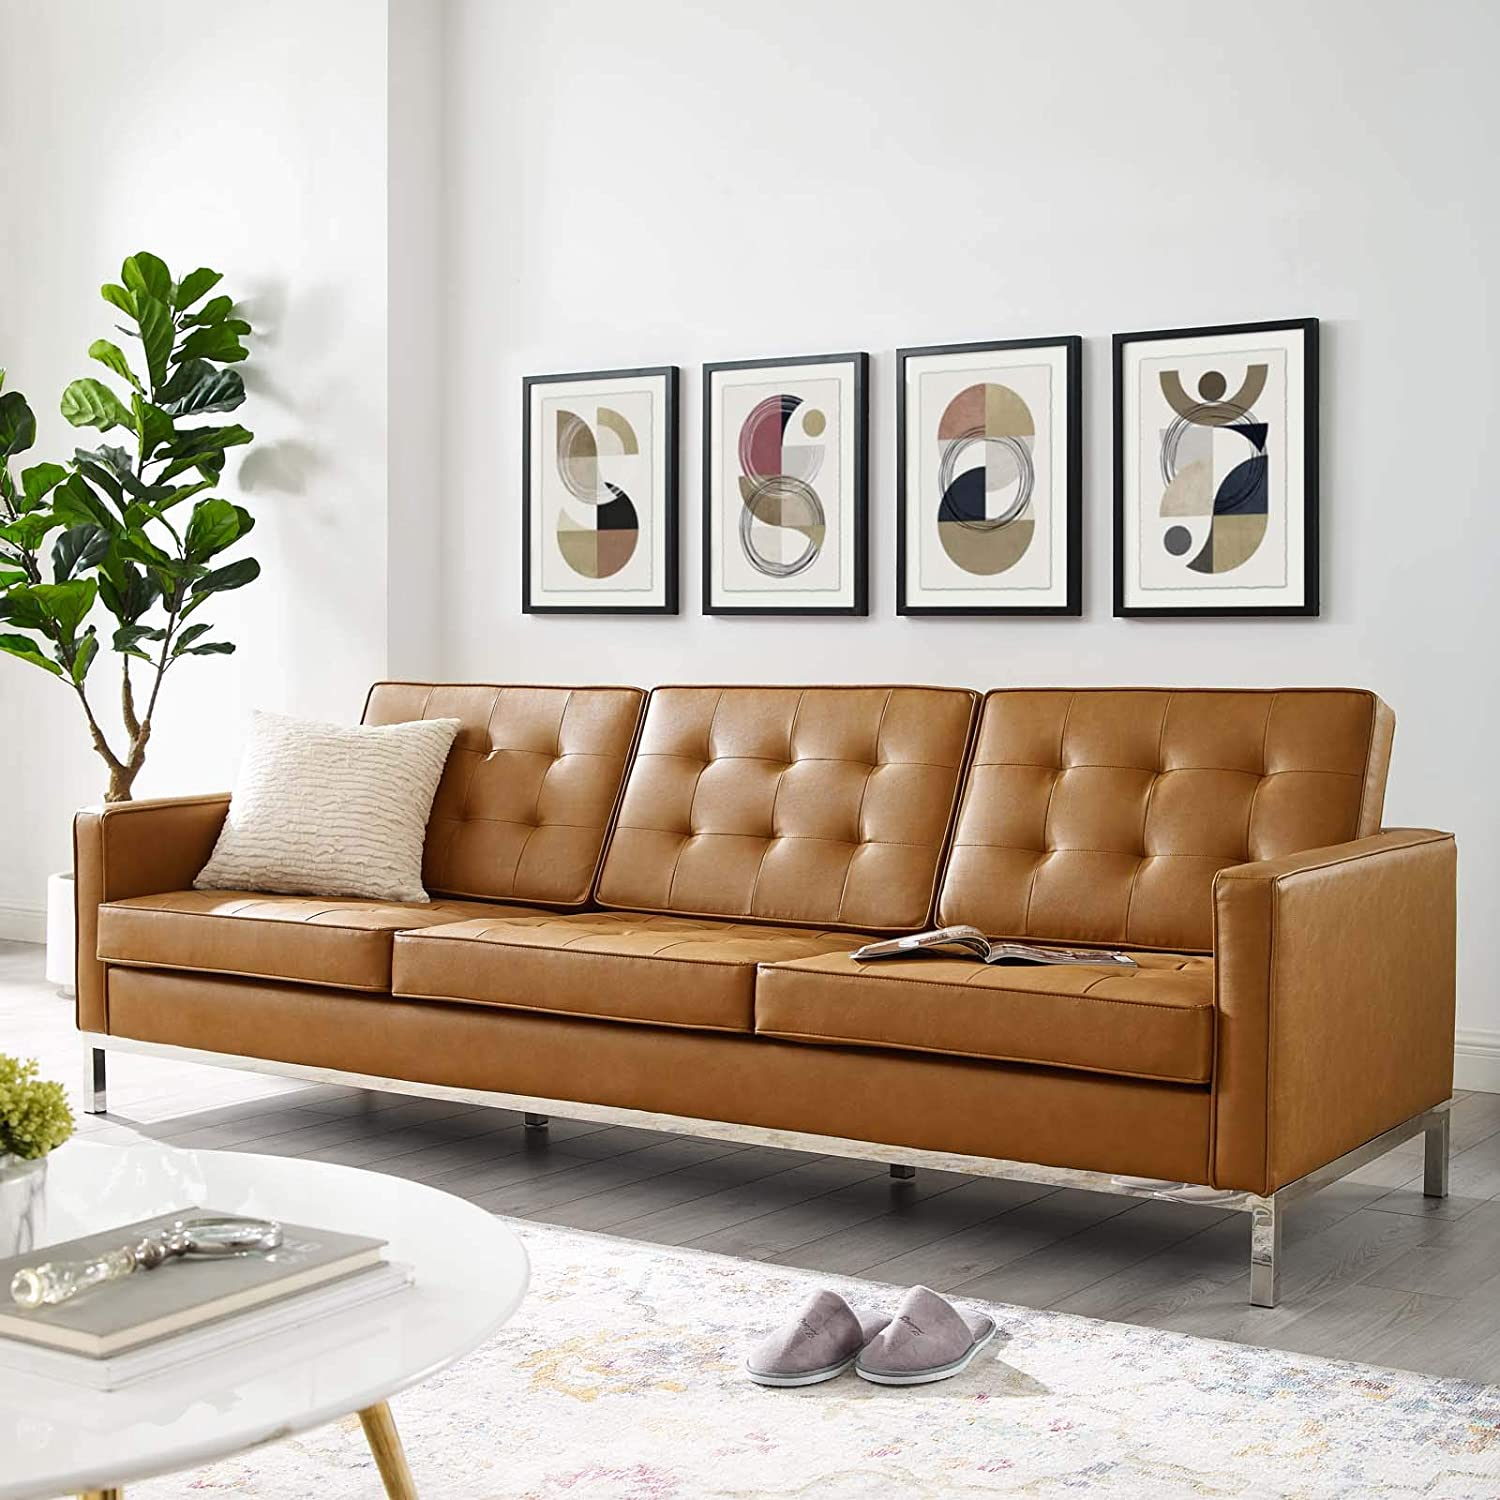 - Amazon.com: Modway Loft Tufted Button Faux Leather Upholstered